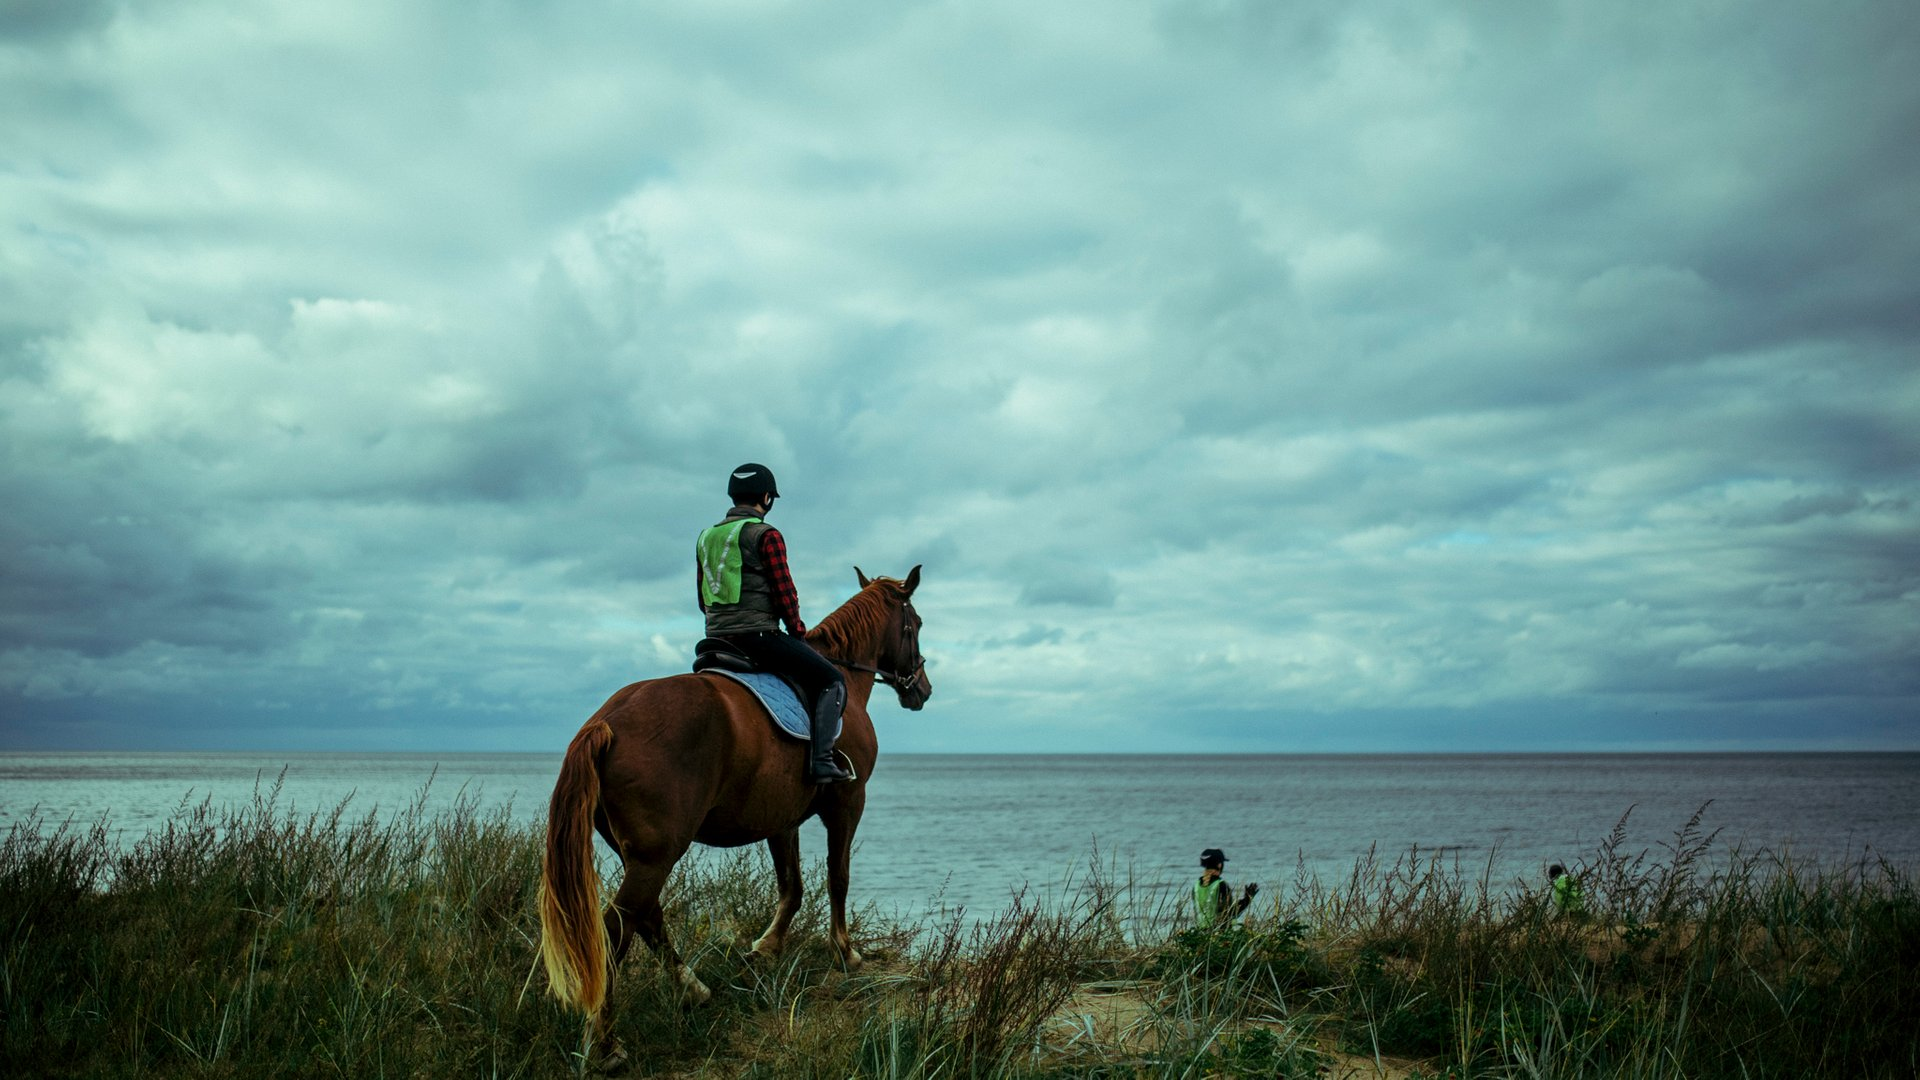 Horseback Riding in Estonia - Best Time